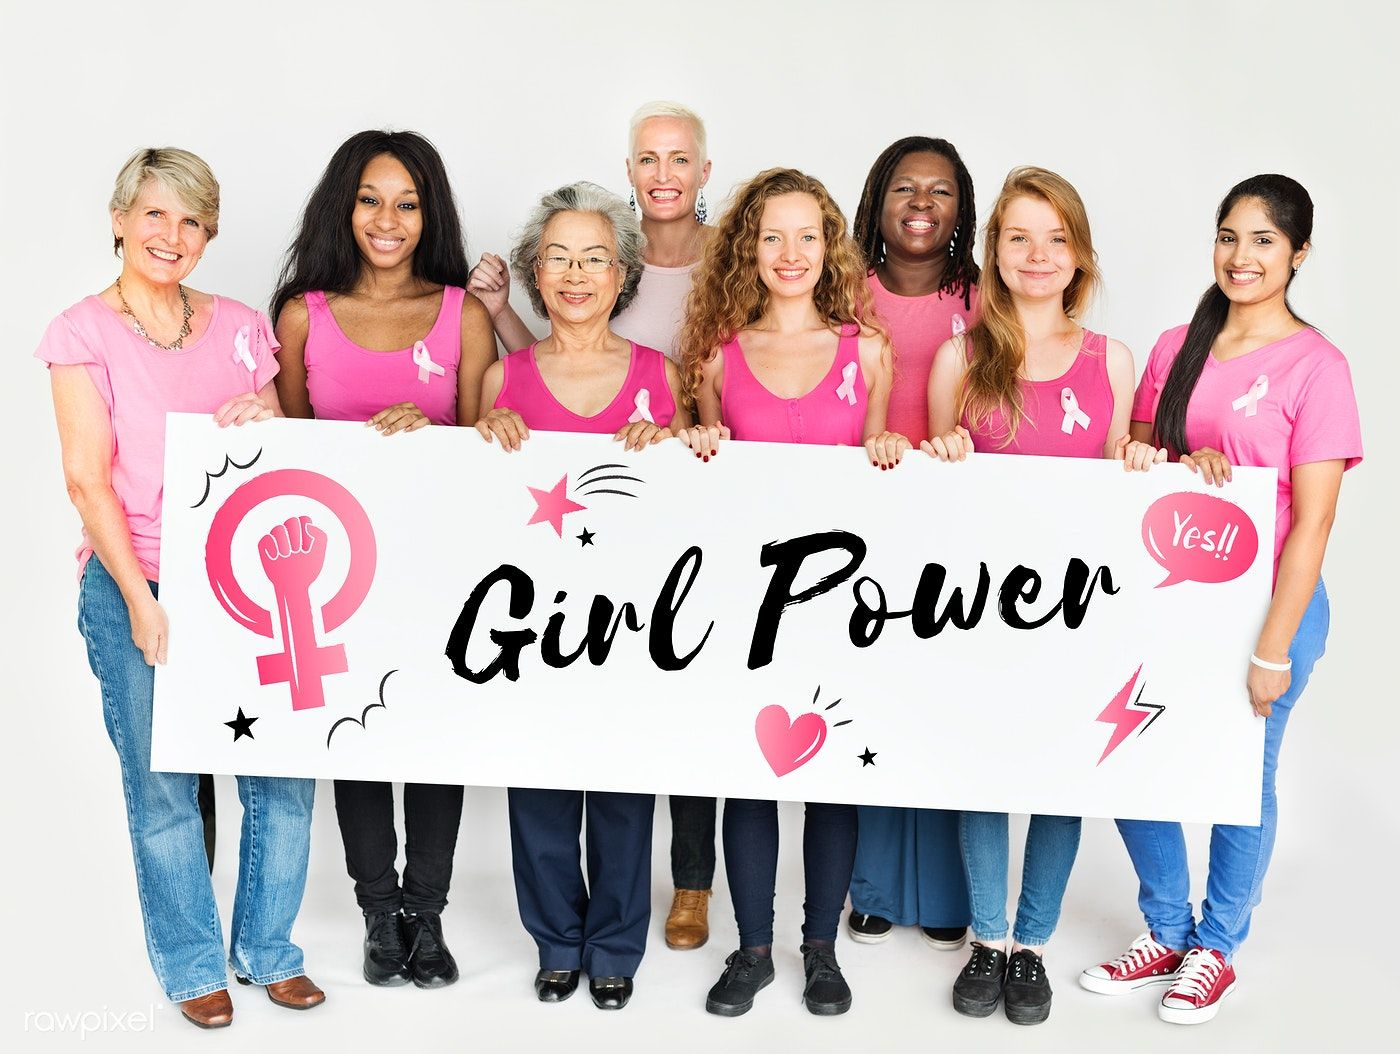 Women Girl Power Feminism Equal Opportunity Concept free